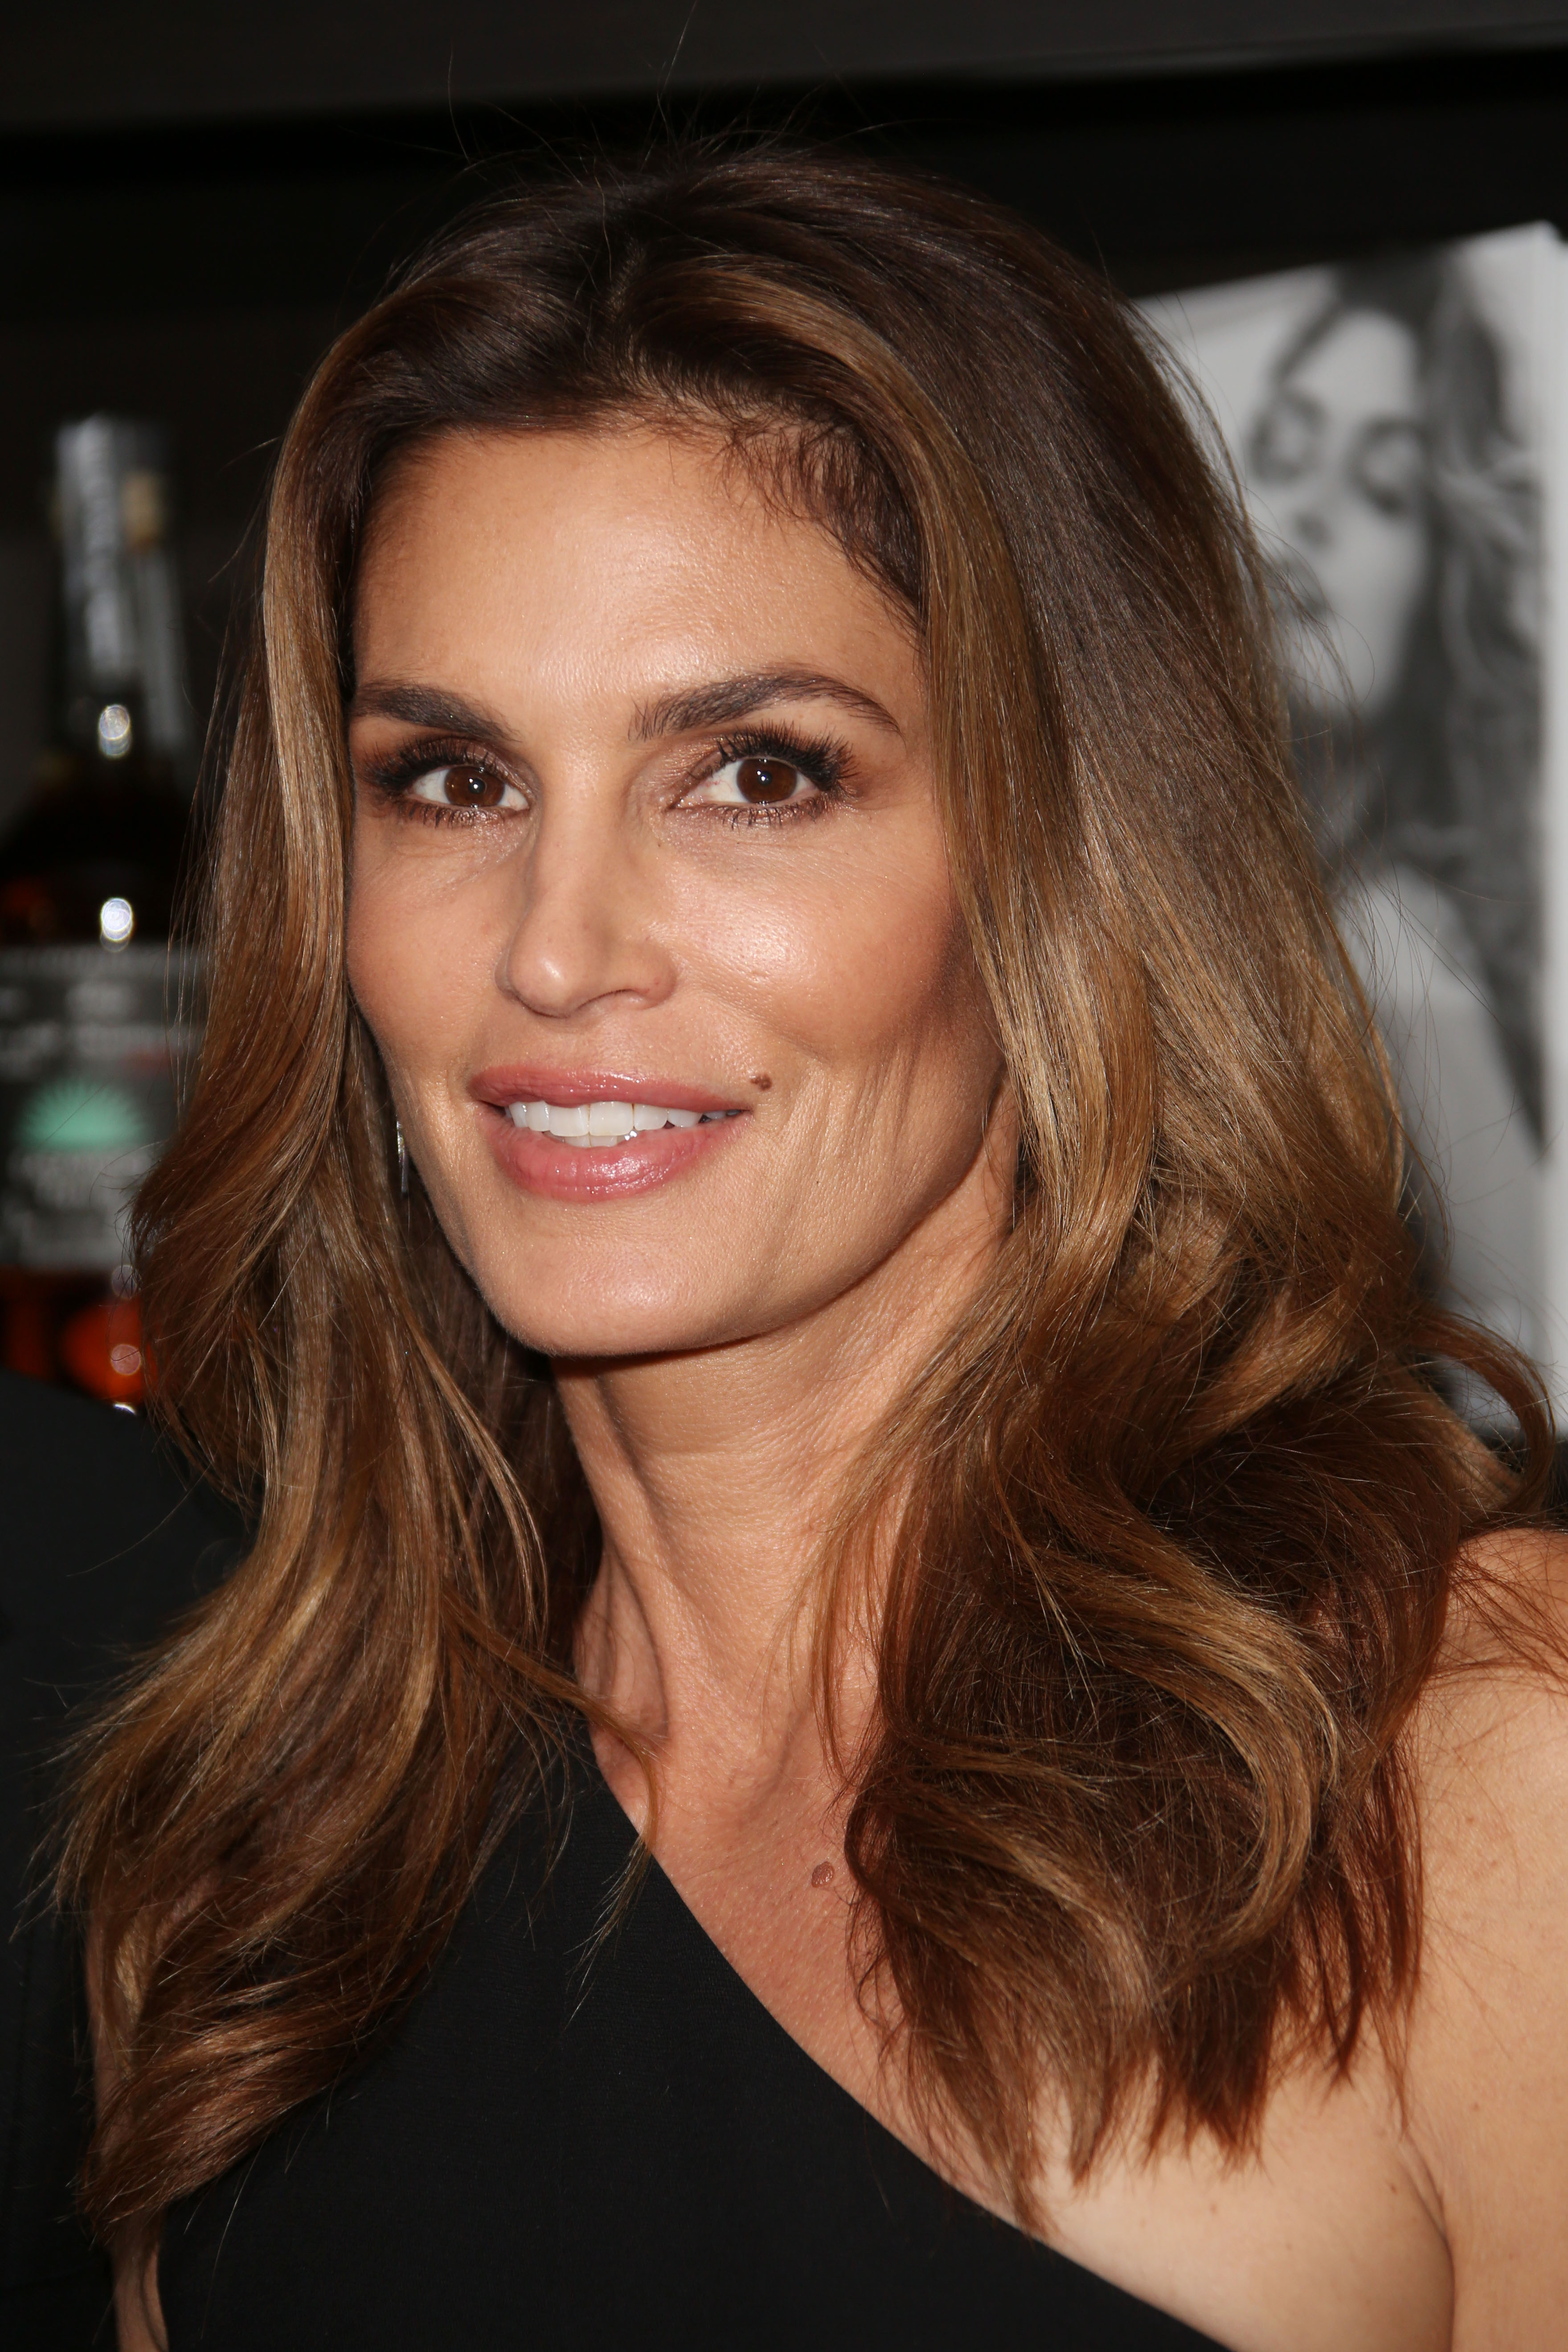 Cindy Crawford nudes (78 foto and video), Topless, Sideboobs, Selfie, underwear 2018